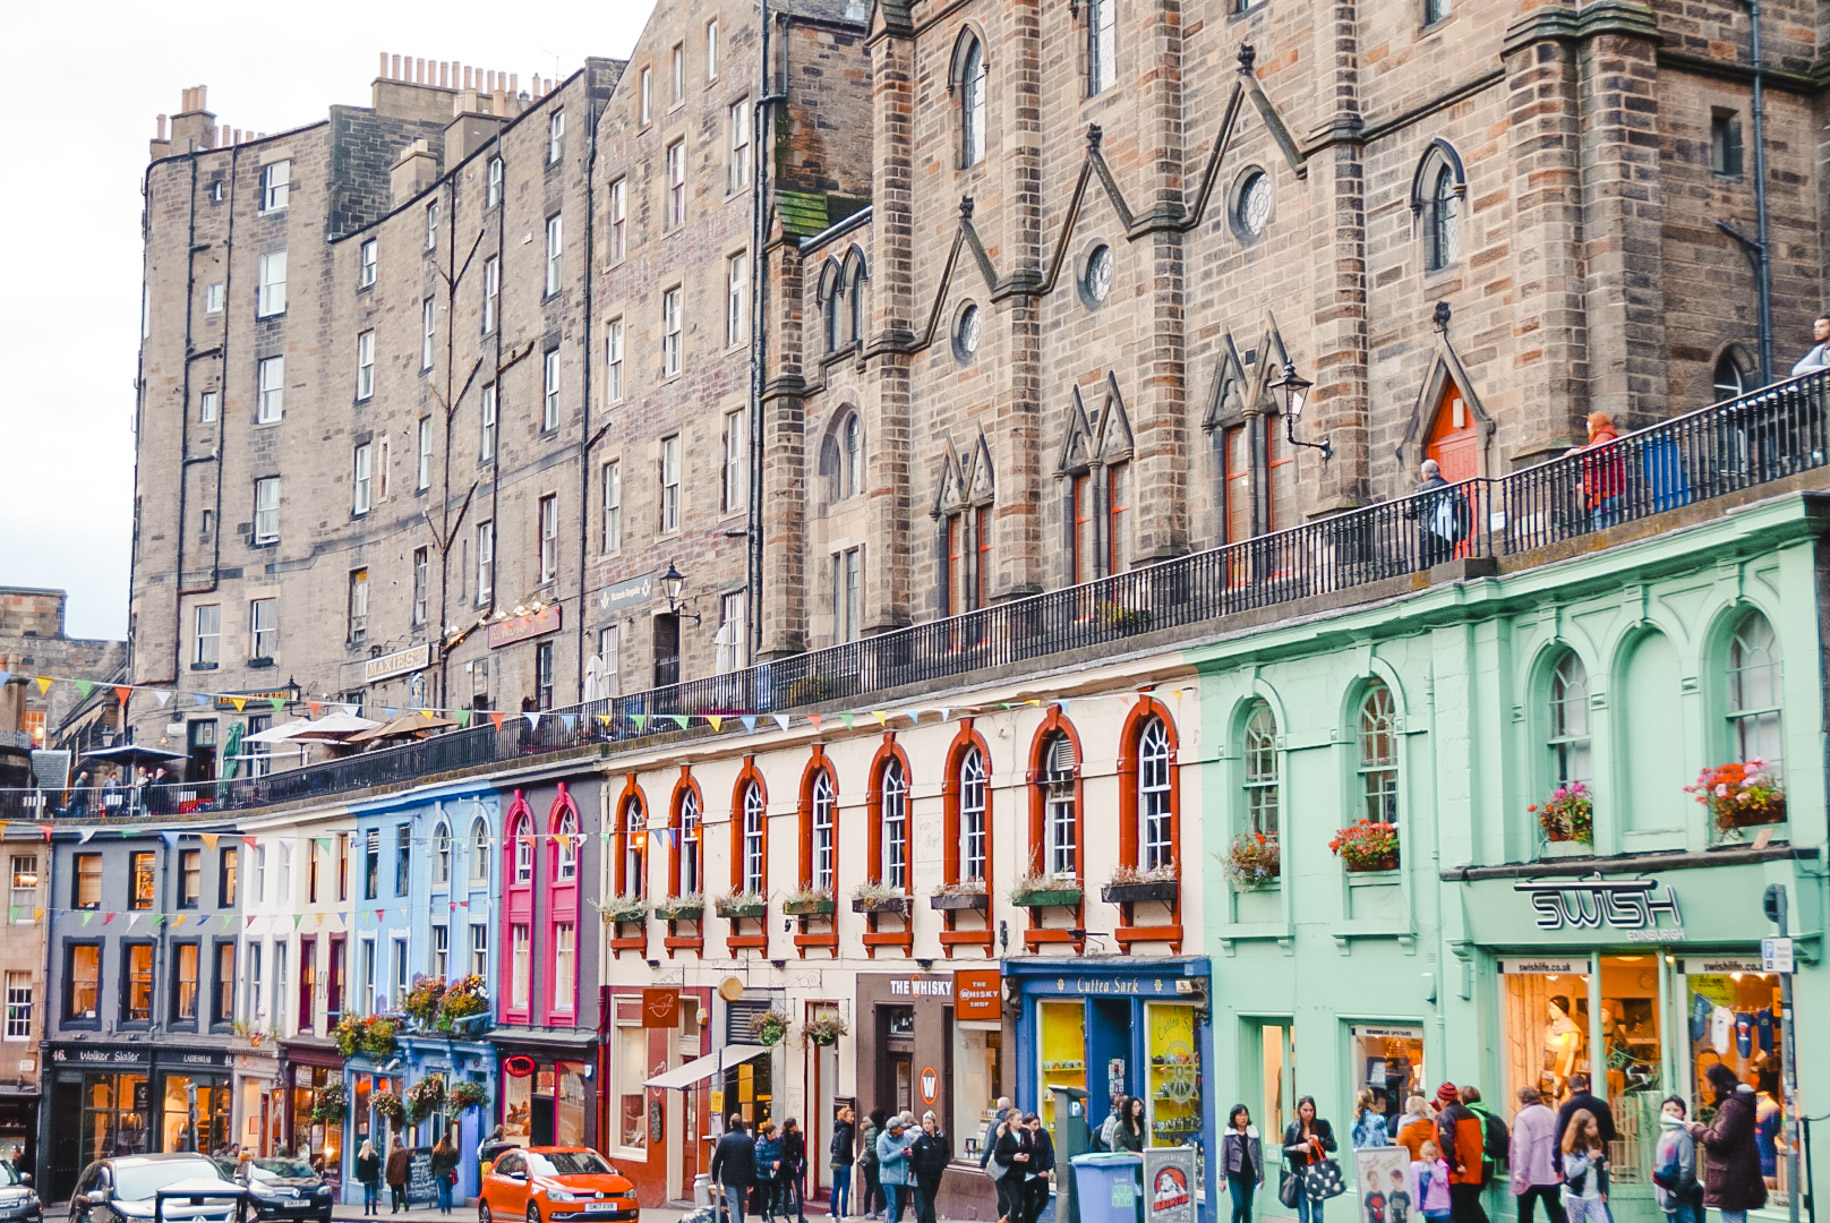 Victoria Street in Edinburgh, which features brick buildings overshadowing colourful Victorian shopfronts. Edinburgh is one of my favourite solo travel destinations.